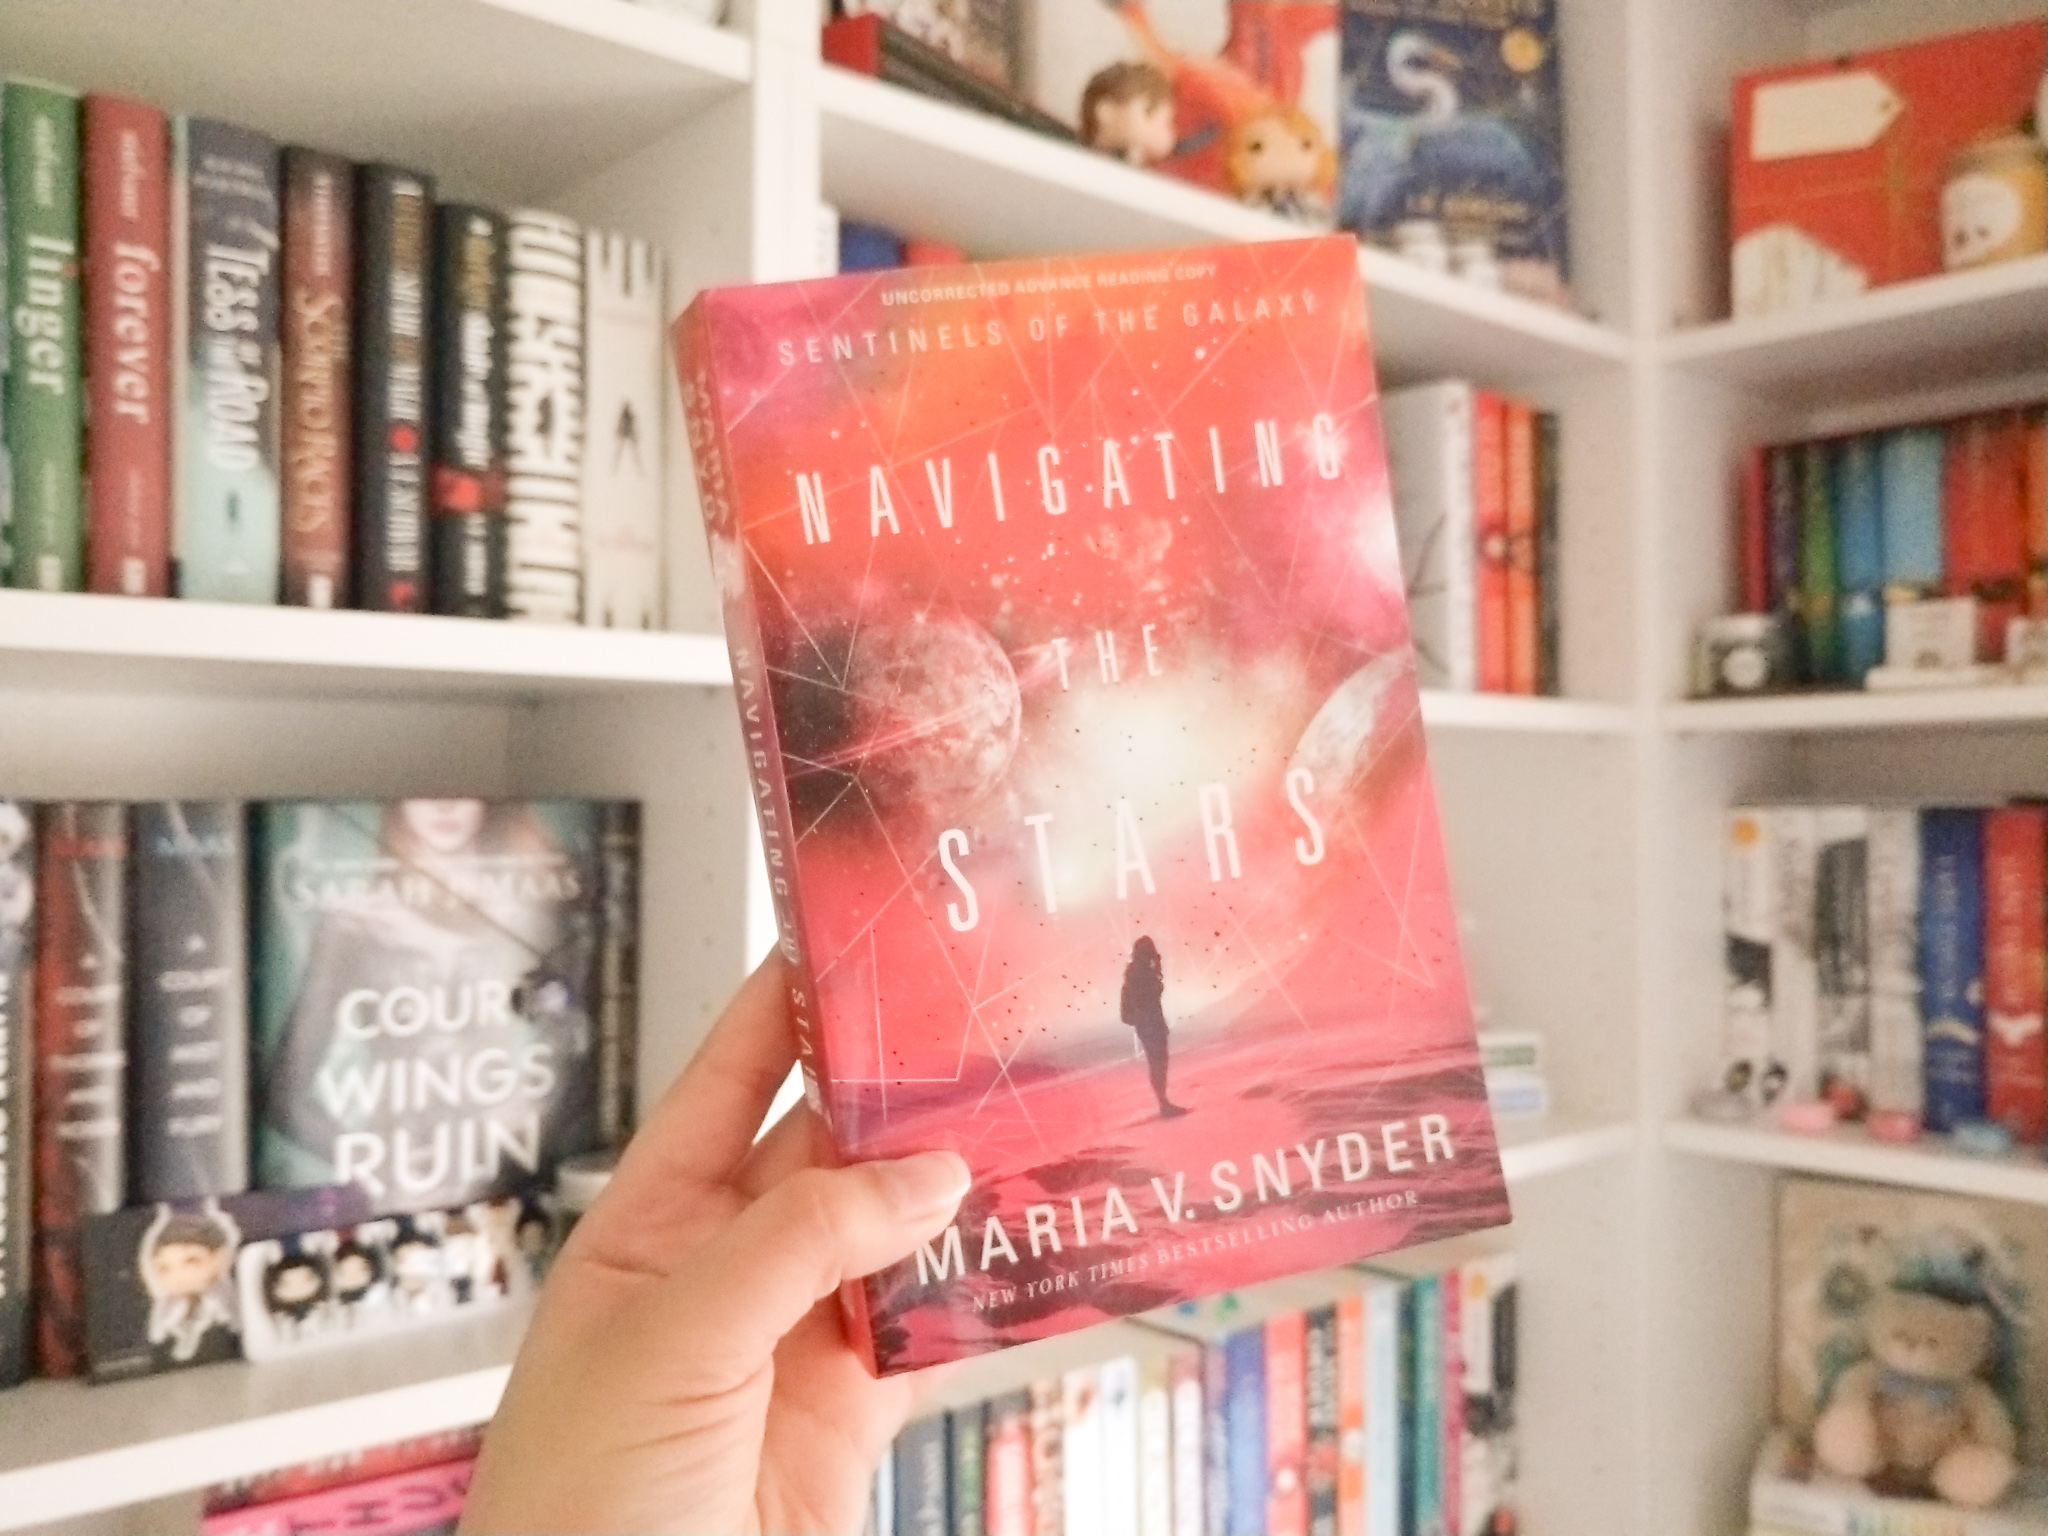 Navigating the Stars by Maria V. Snyder Book Review